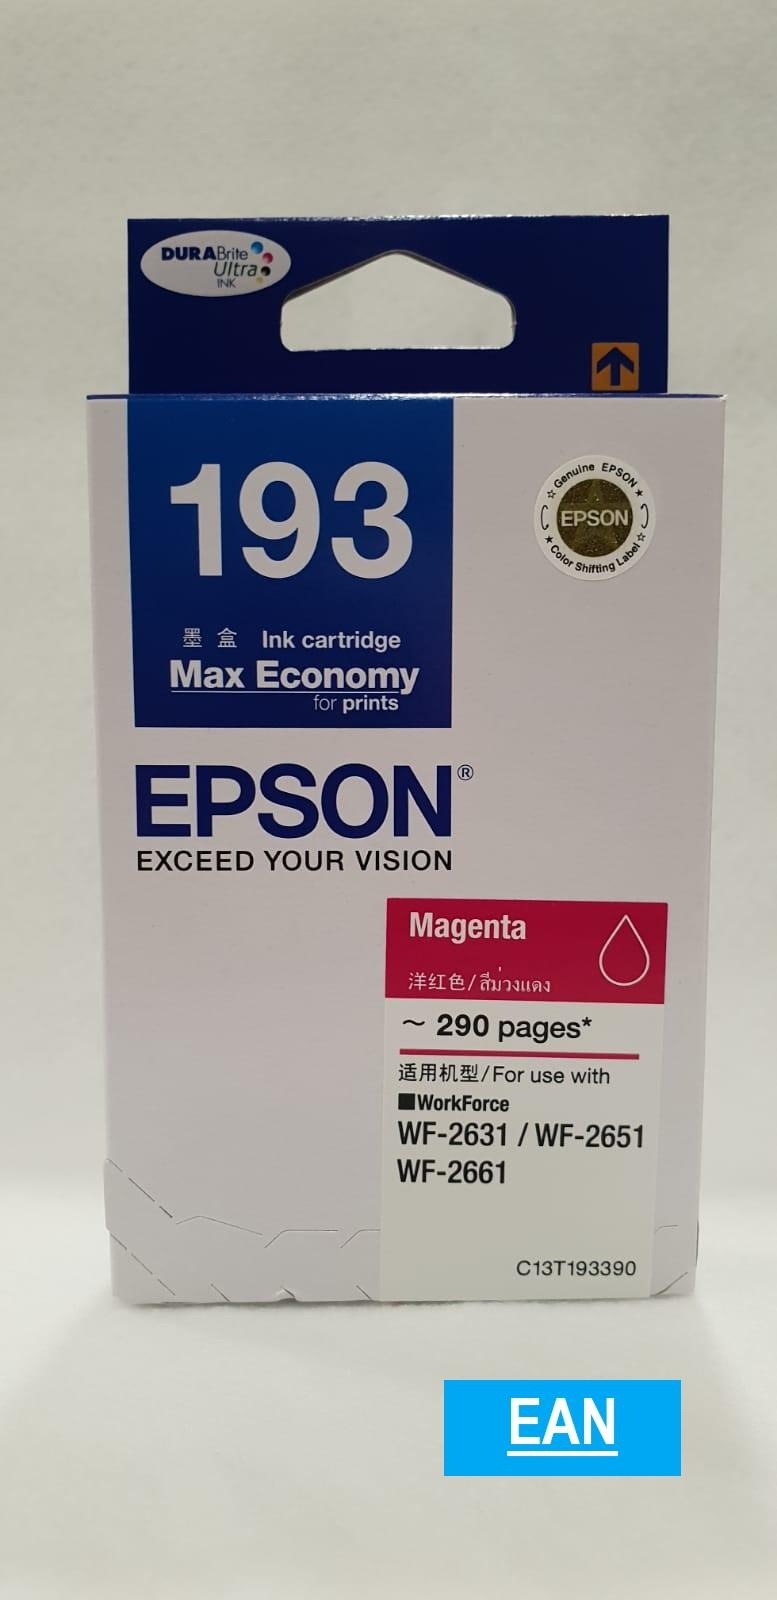 Buy Sell Cheapest Epson T252220 Best Quality Product Deals Cartridge Lx310 T193 Magenta Ink For Wf 2631 Wf2651 Wf2661 C13t193190 193 T1933 T193390